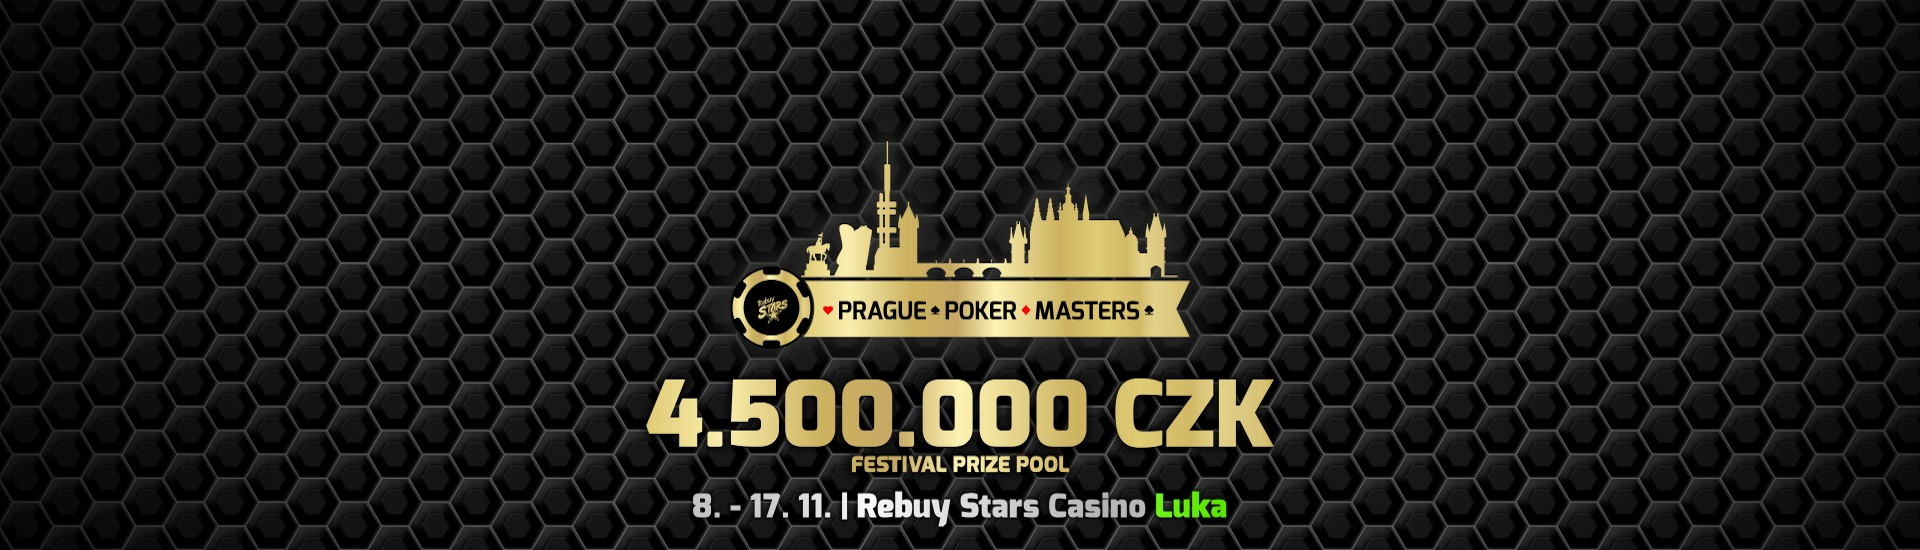 Prague-Poker-Masters-2019-Luka-slider_web_d.JPG